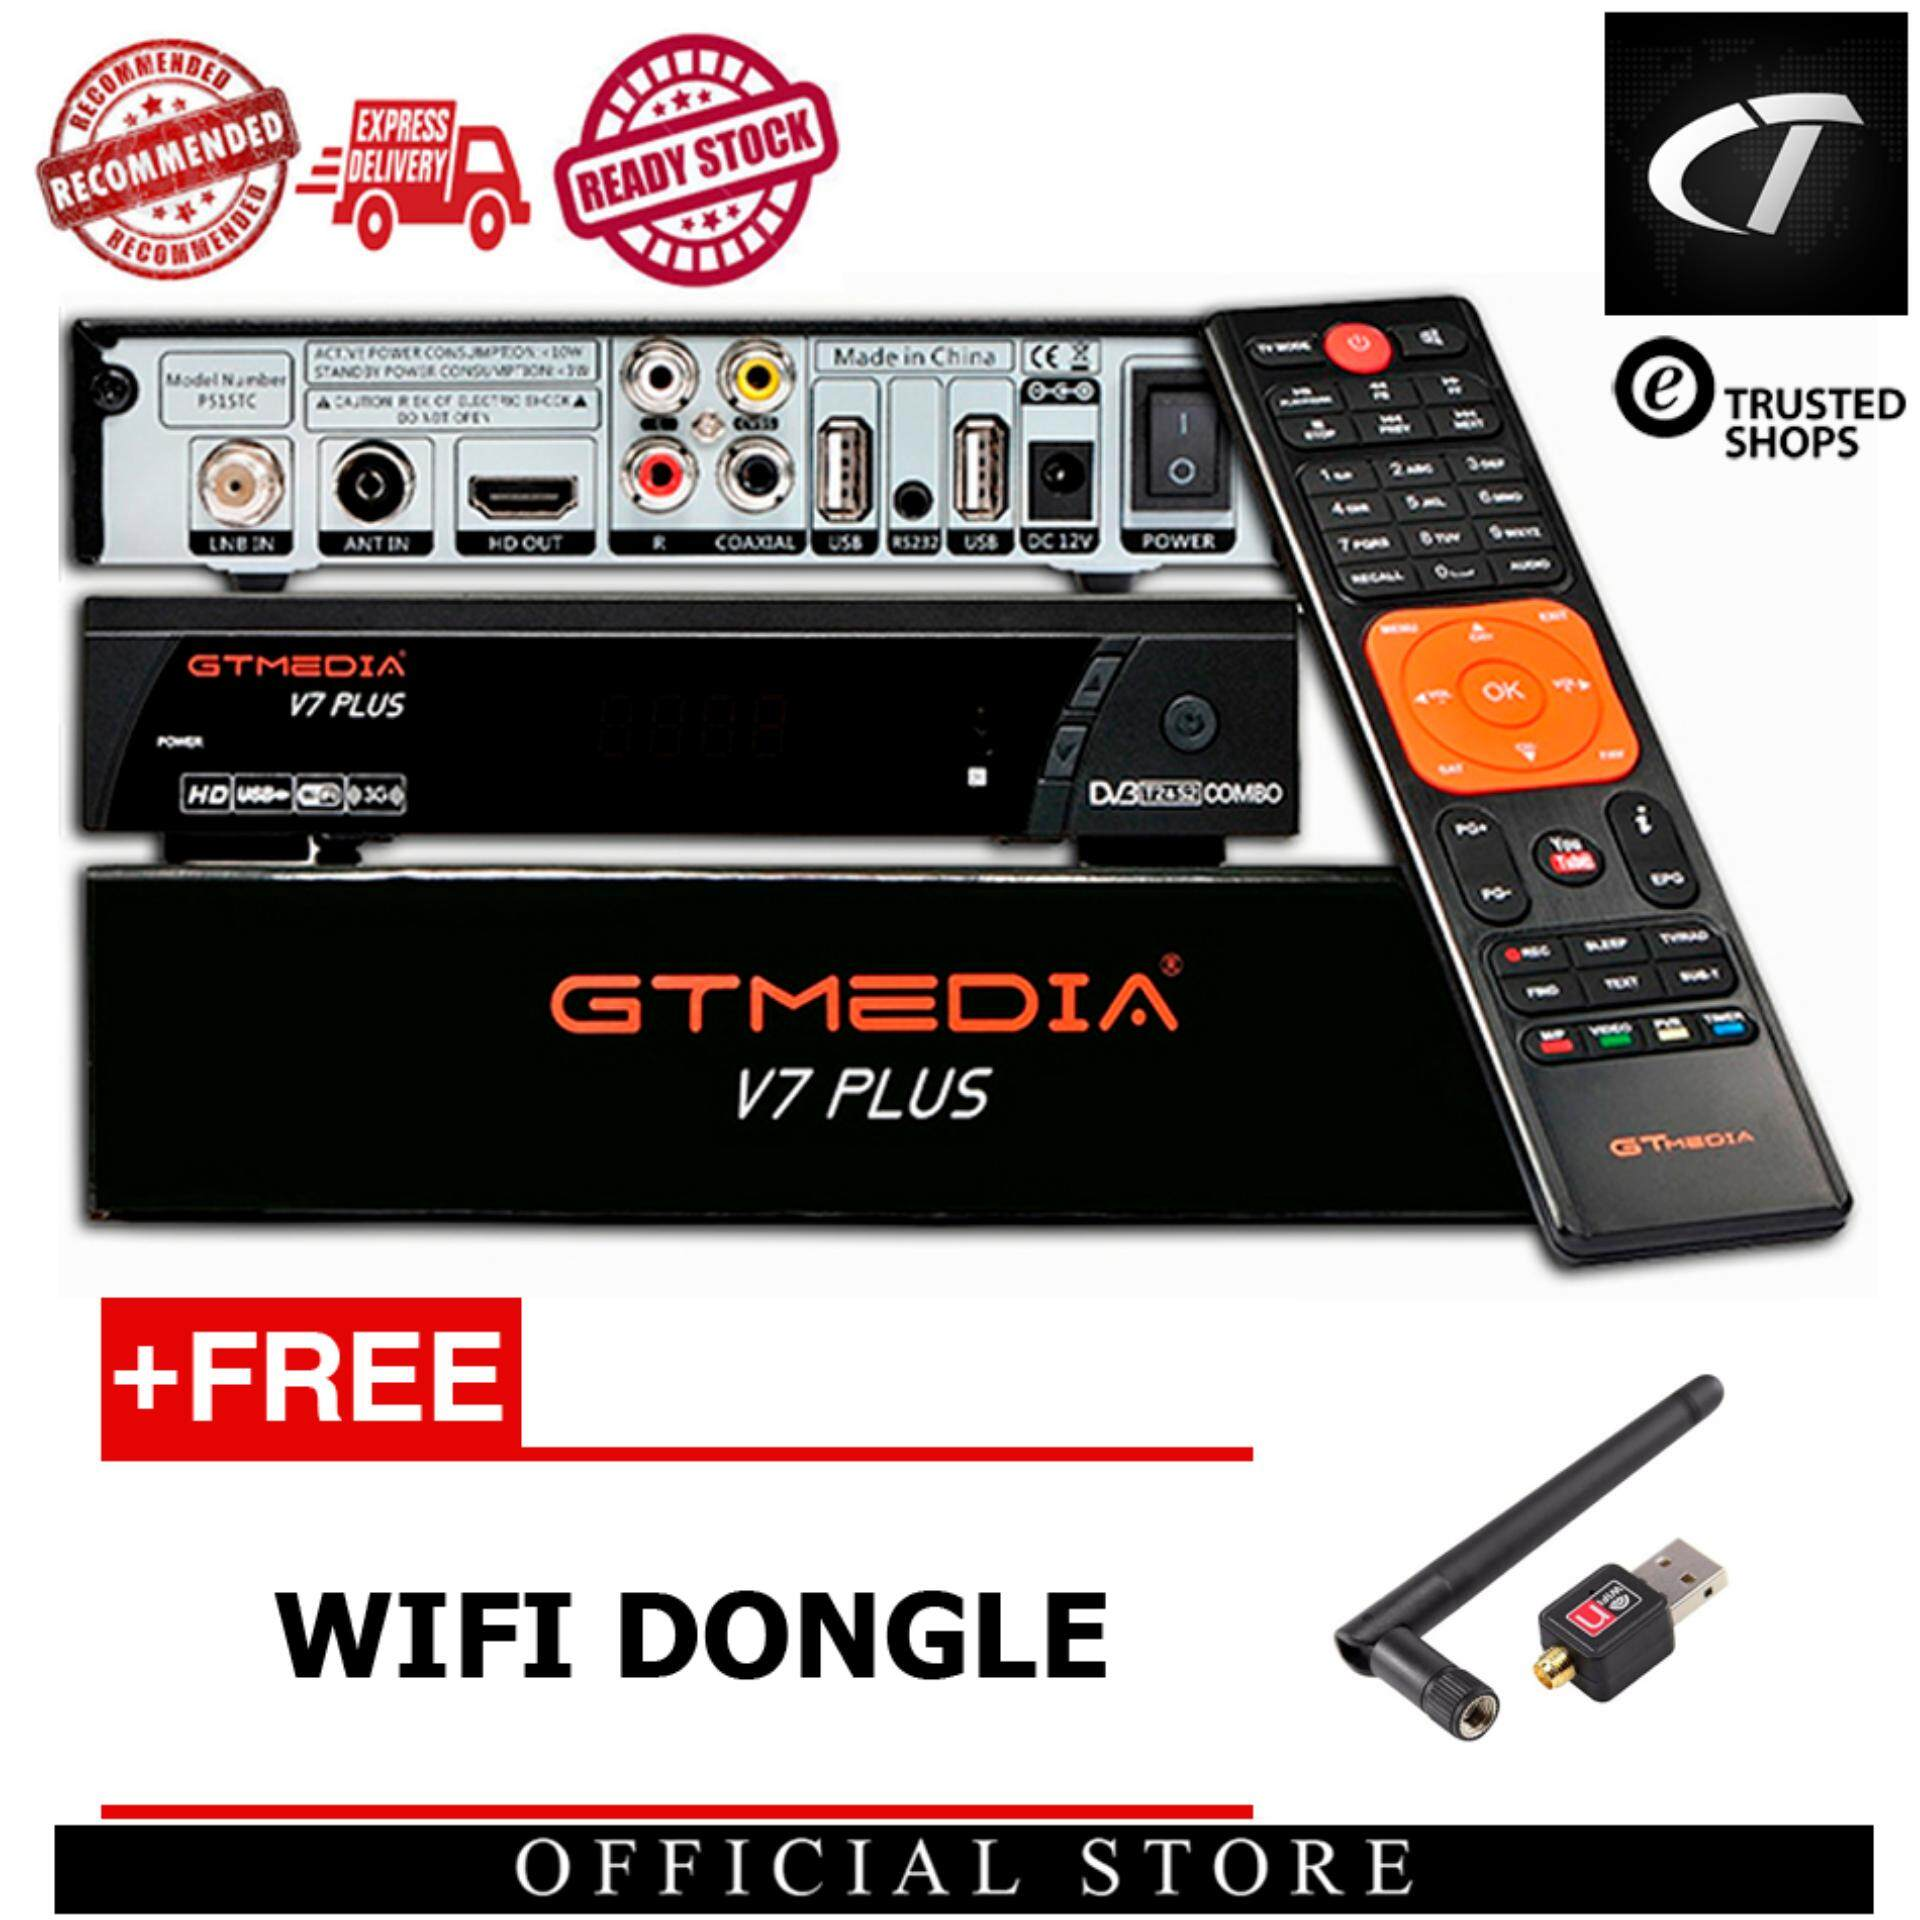 GT Media 'Freesat' V7 Plus - Full HD